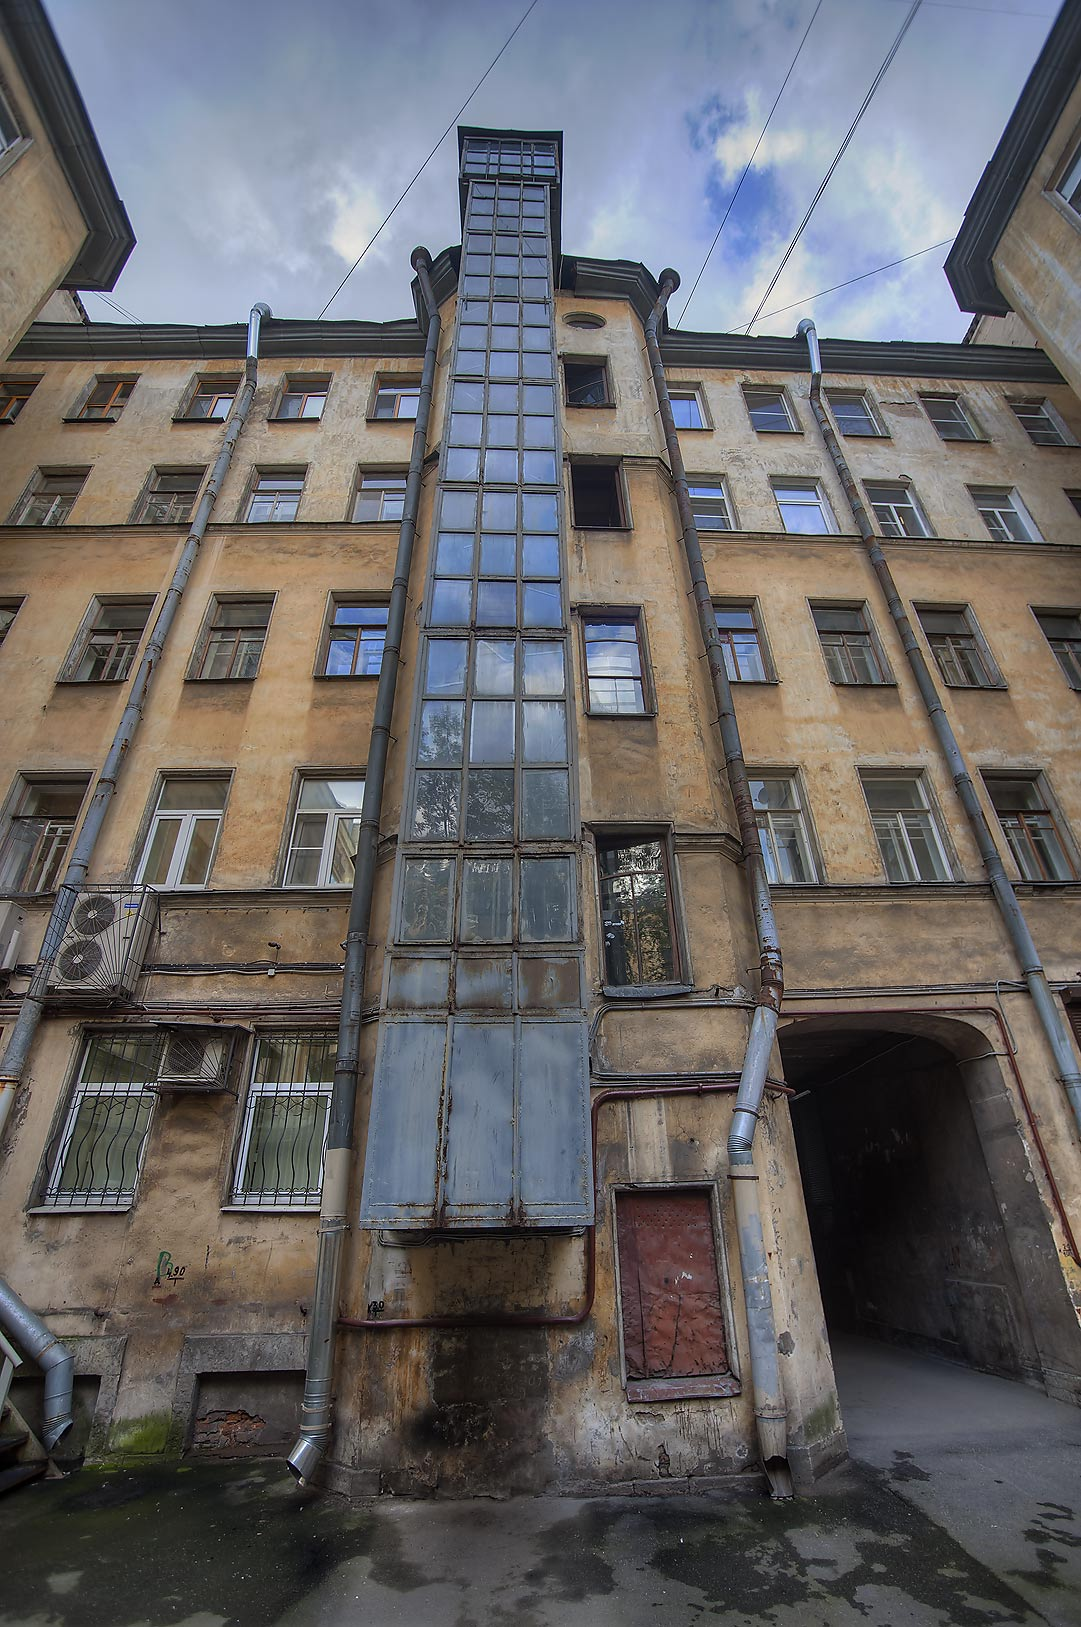 House with elevator in Sementsy area near Vitebsky Train Station. Petersburg, Russia